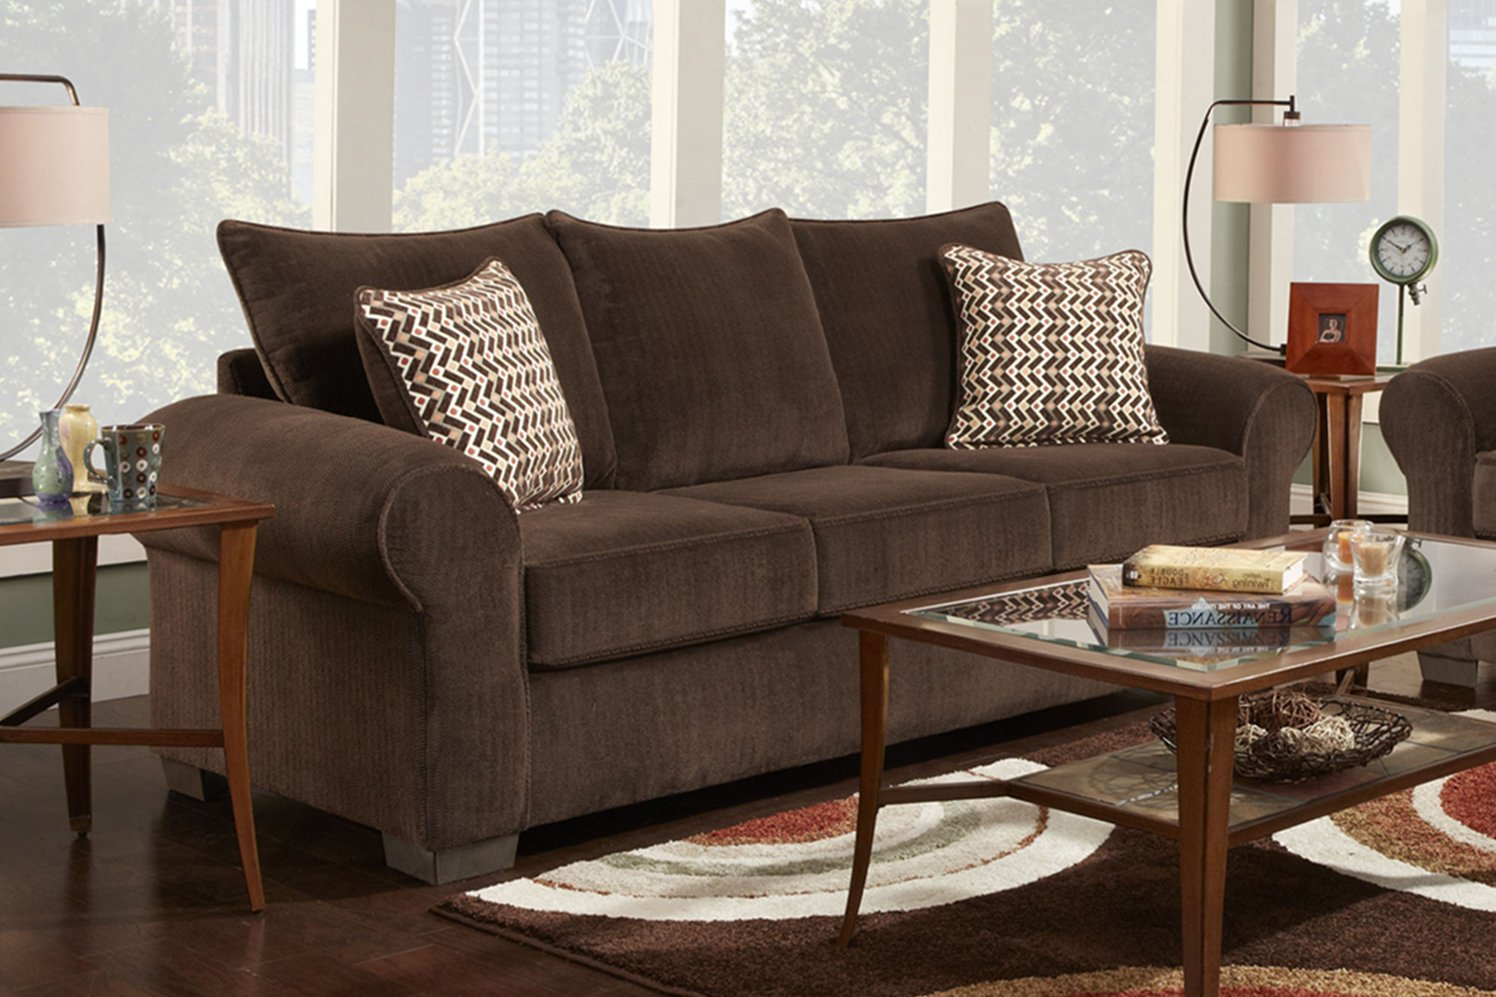 Pleasant Amazon Com Chelsea Home Queen Sleeper Sofa In Brown Inzonedesignstudio Interior Chair Design Inzonedesignstudiocom